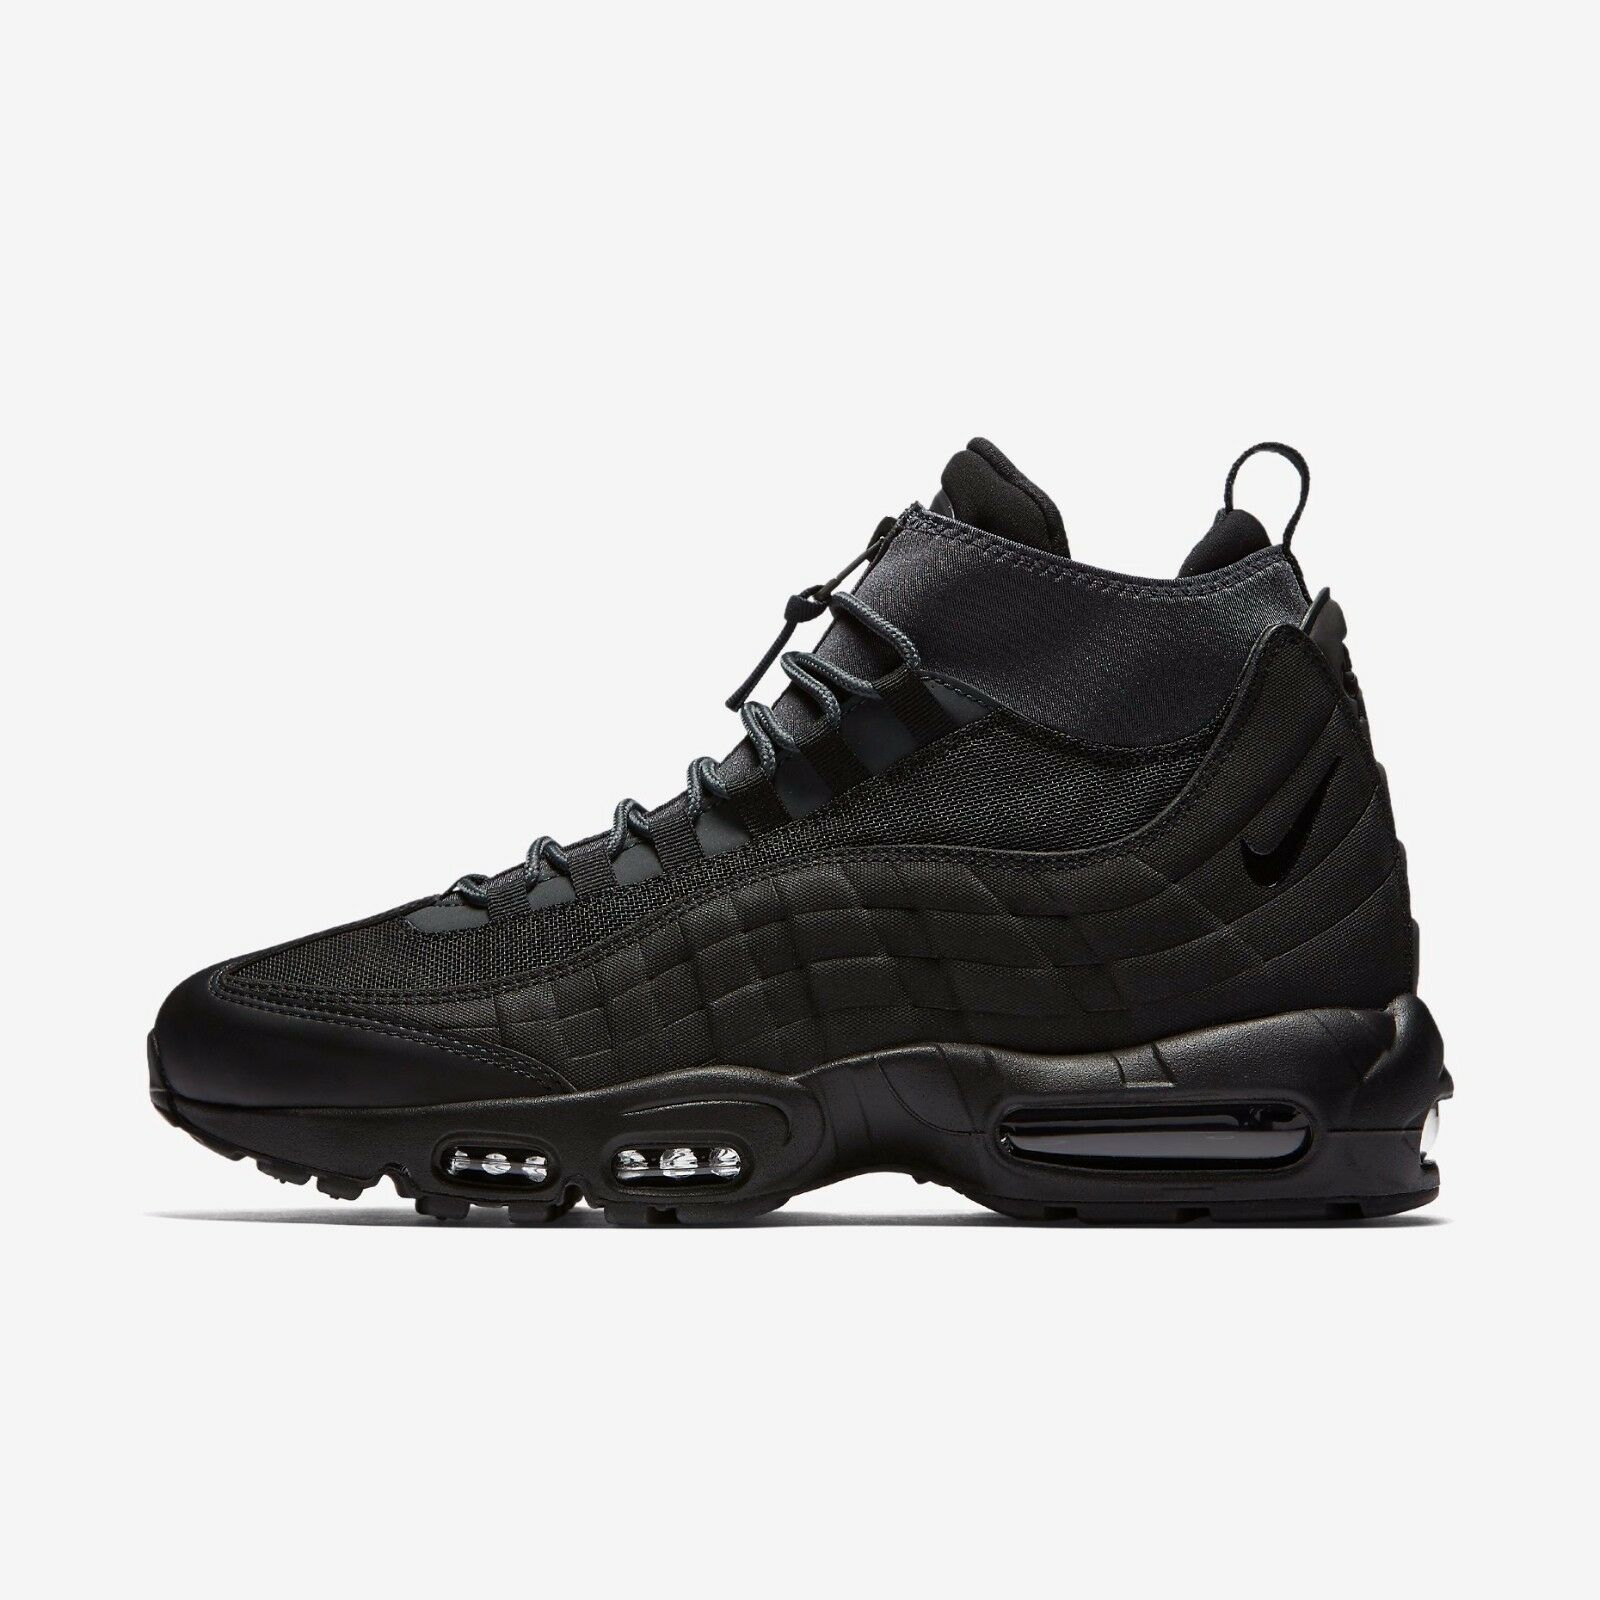 NIKE AIR MAX 95 SNEAKERBOOT 806809-001 BLACK BLACK ANTHRACITE WHITE